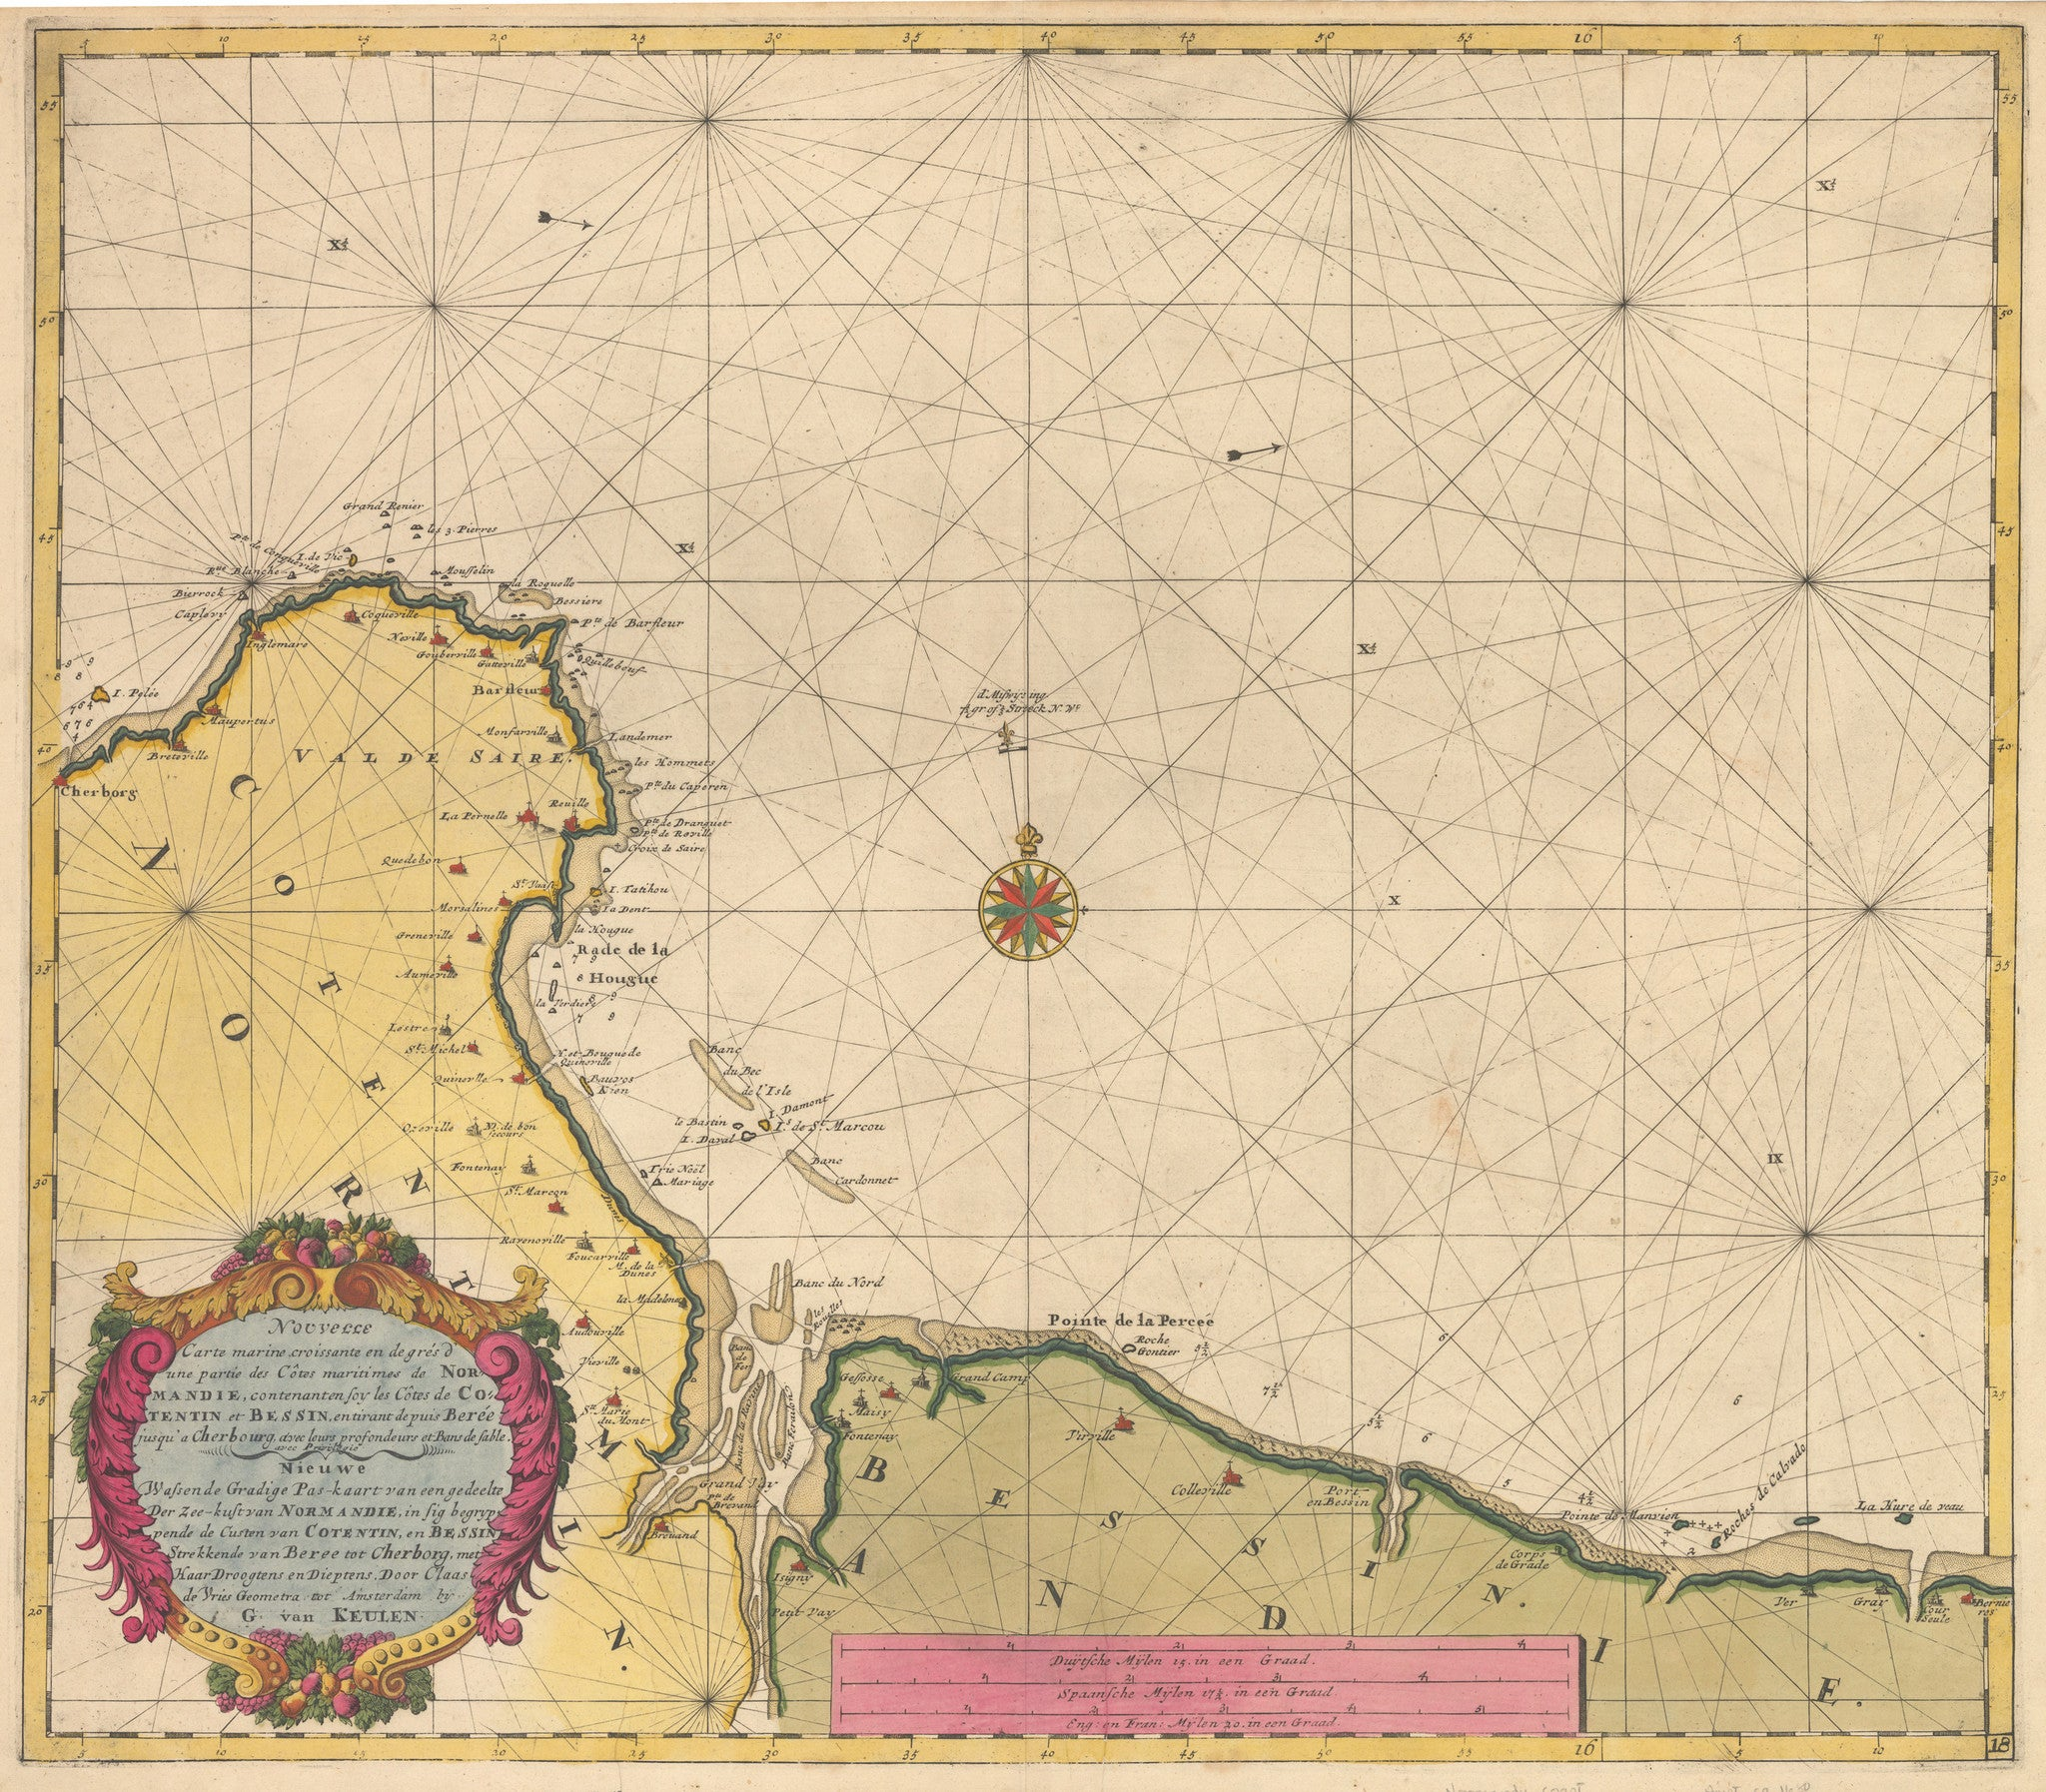 Antique Sea Chart of Normandy France by: Van Keulen 1680